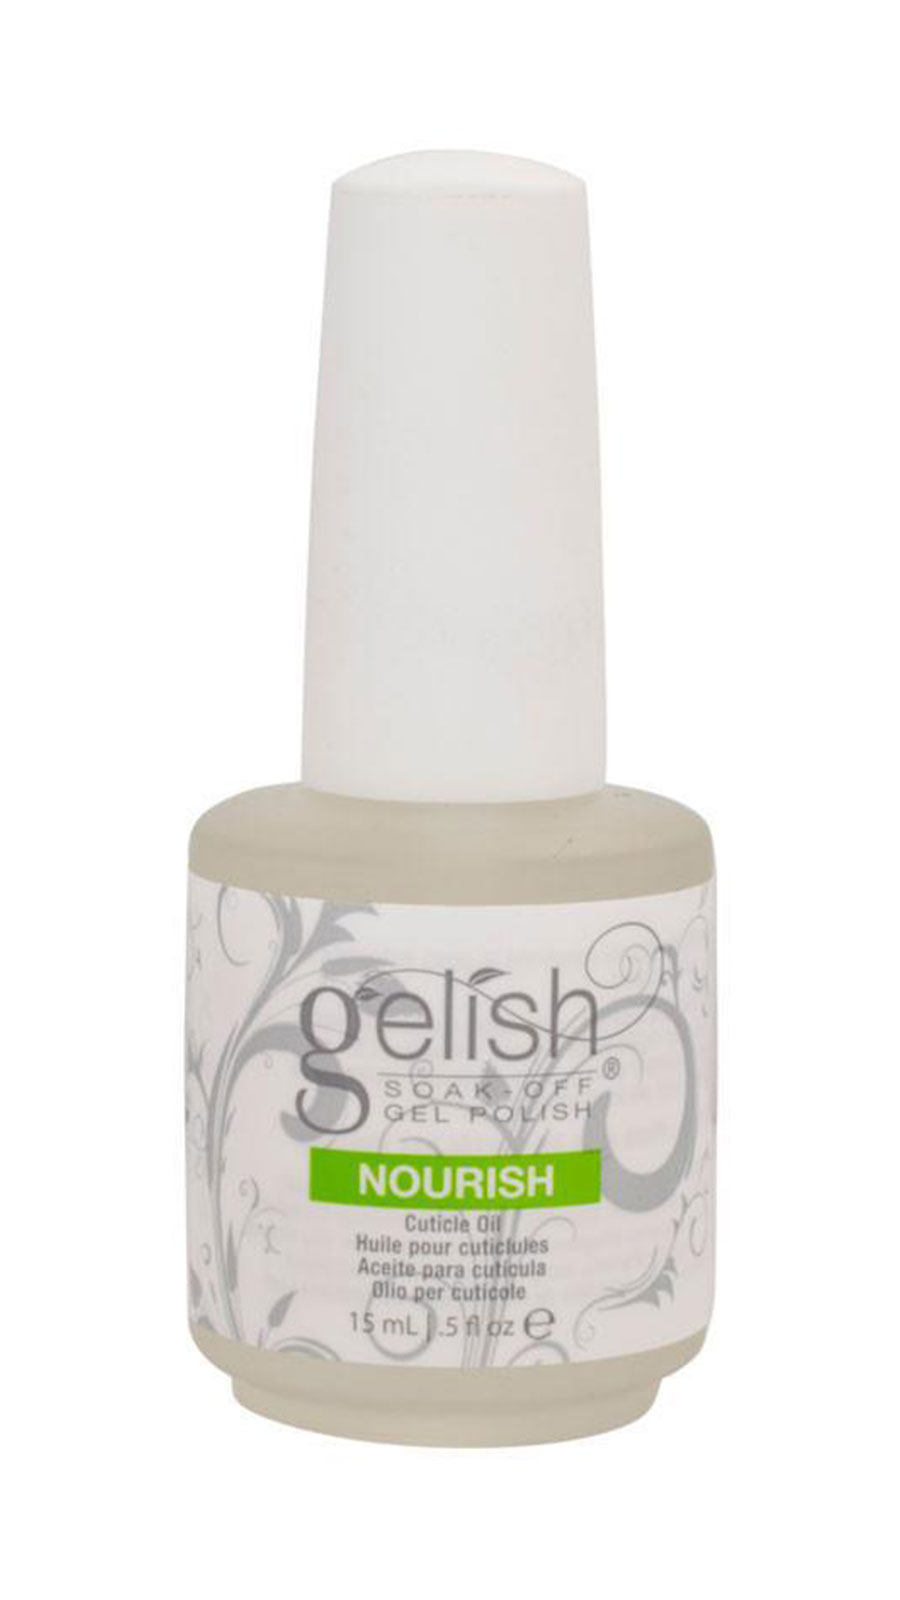 Gelish Soak Off Gel Polish - Nail Lacquer Cuticle Oil Nourishment